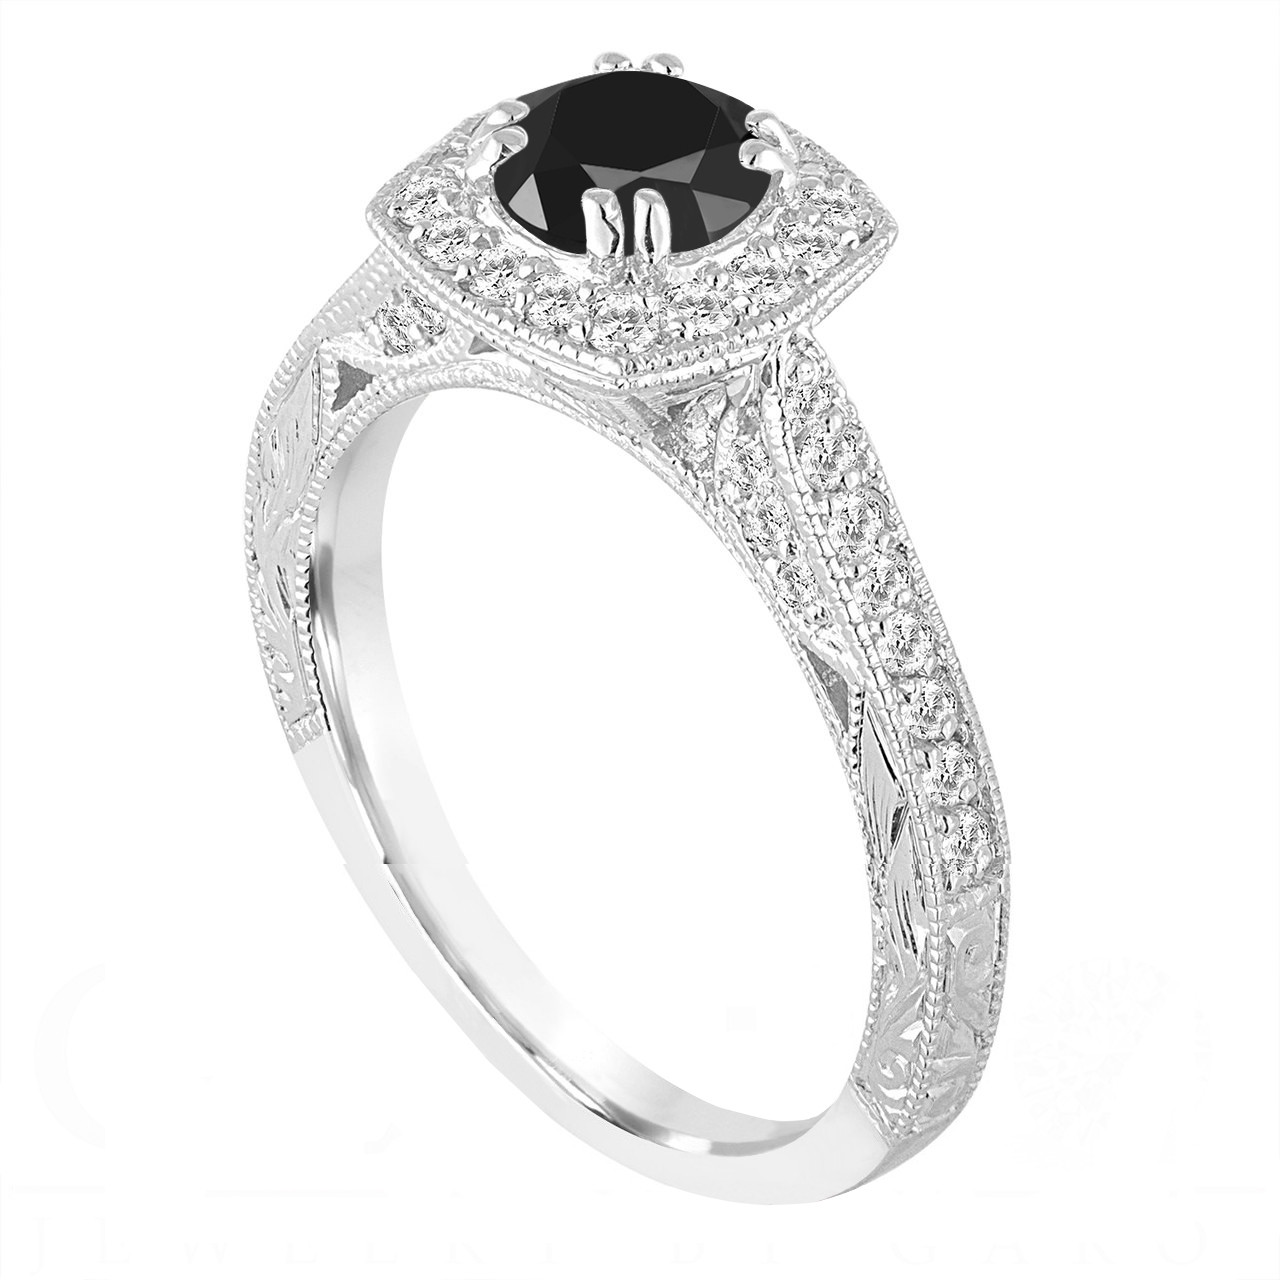 Platinum Fancy Black Diamond Engagement Ring 1 35 Carat Vintage Antique Style